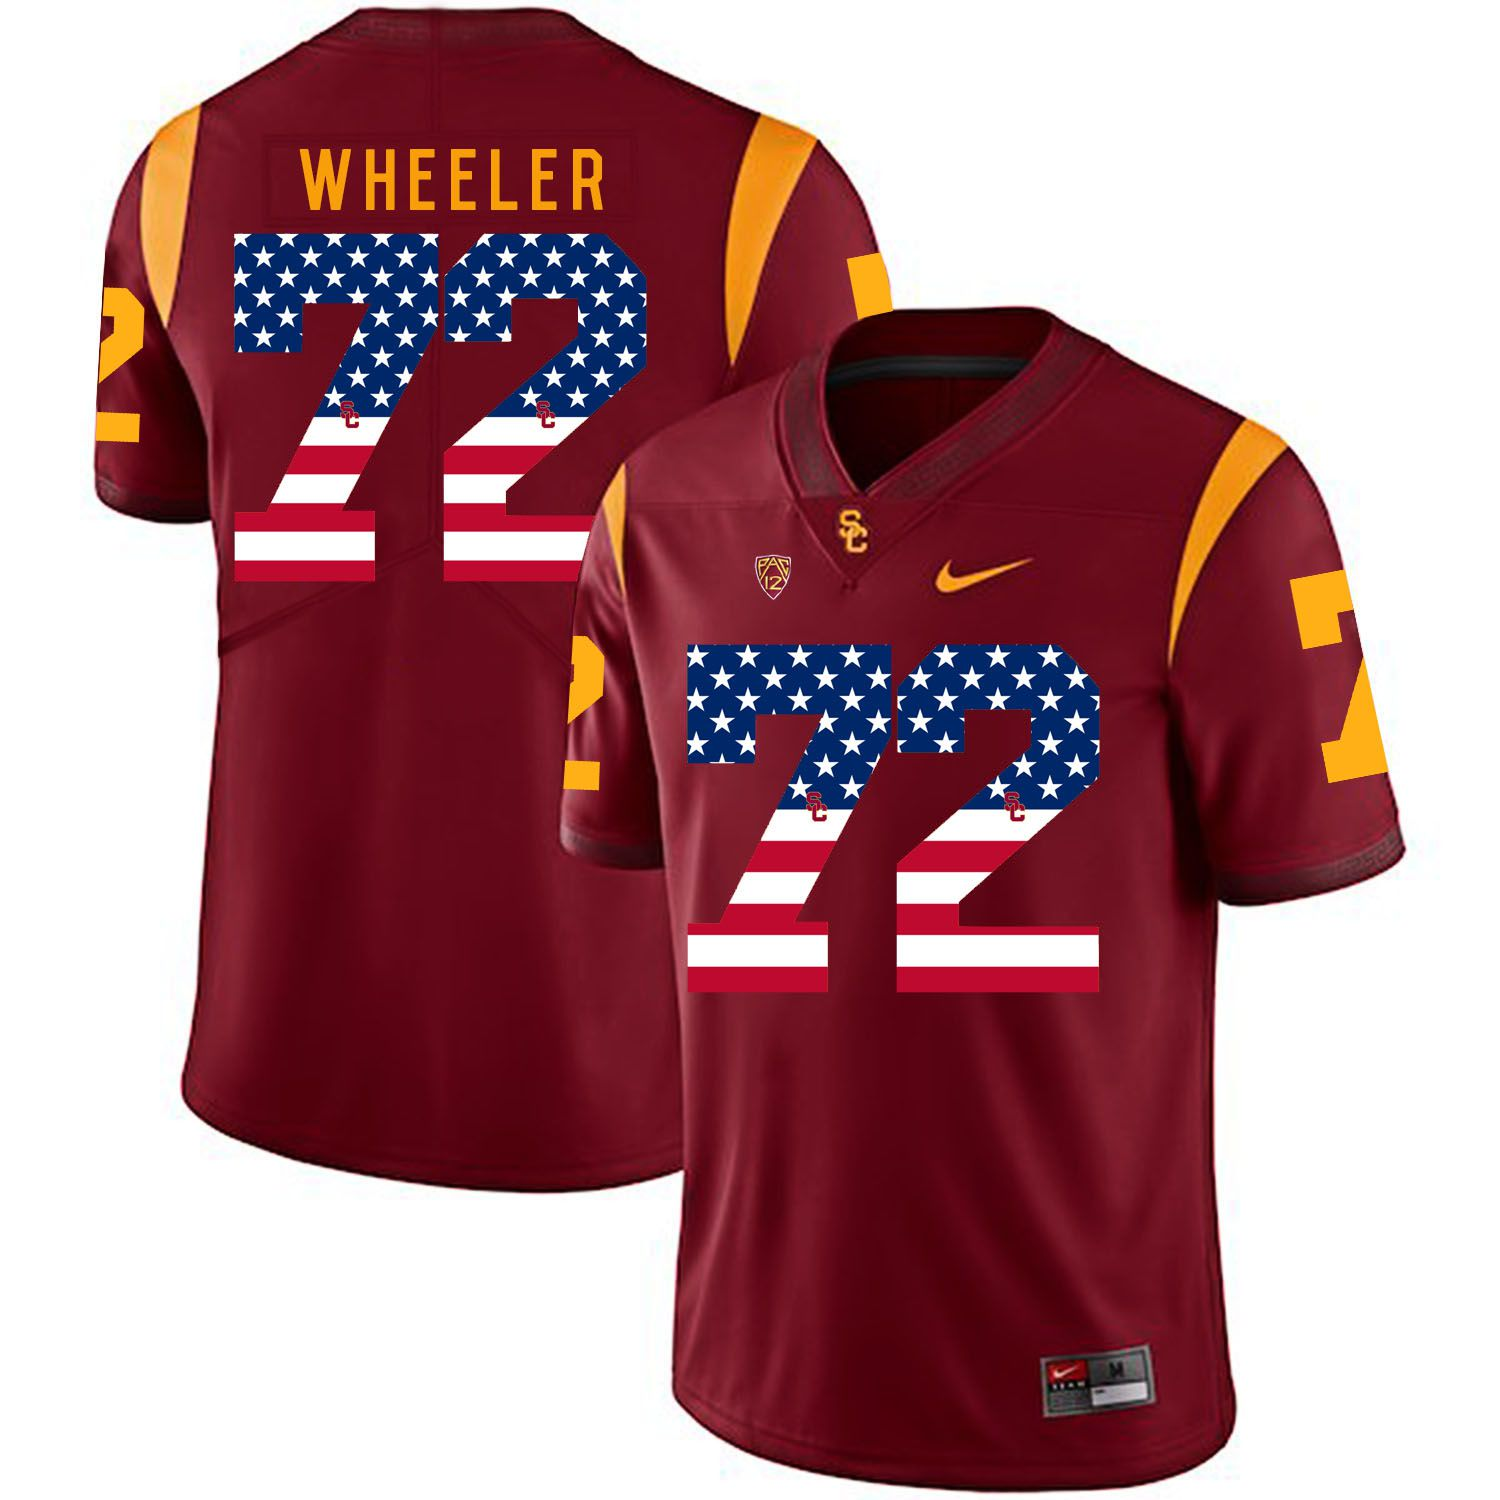 Men USC Trojans 72 Wheeler Red Flag Customized NCAA Jerseys